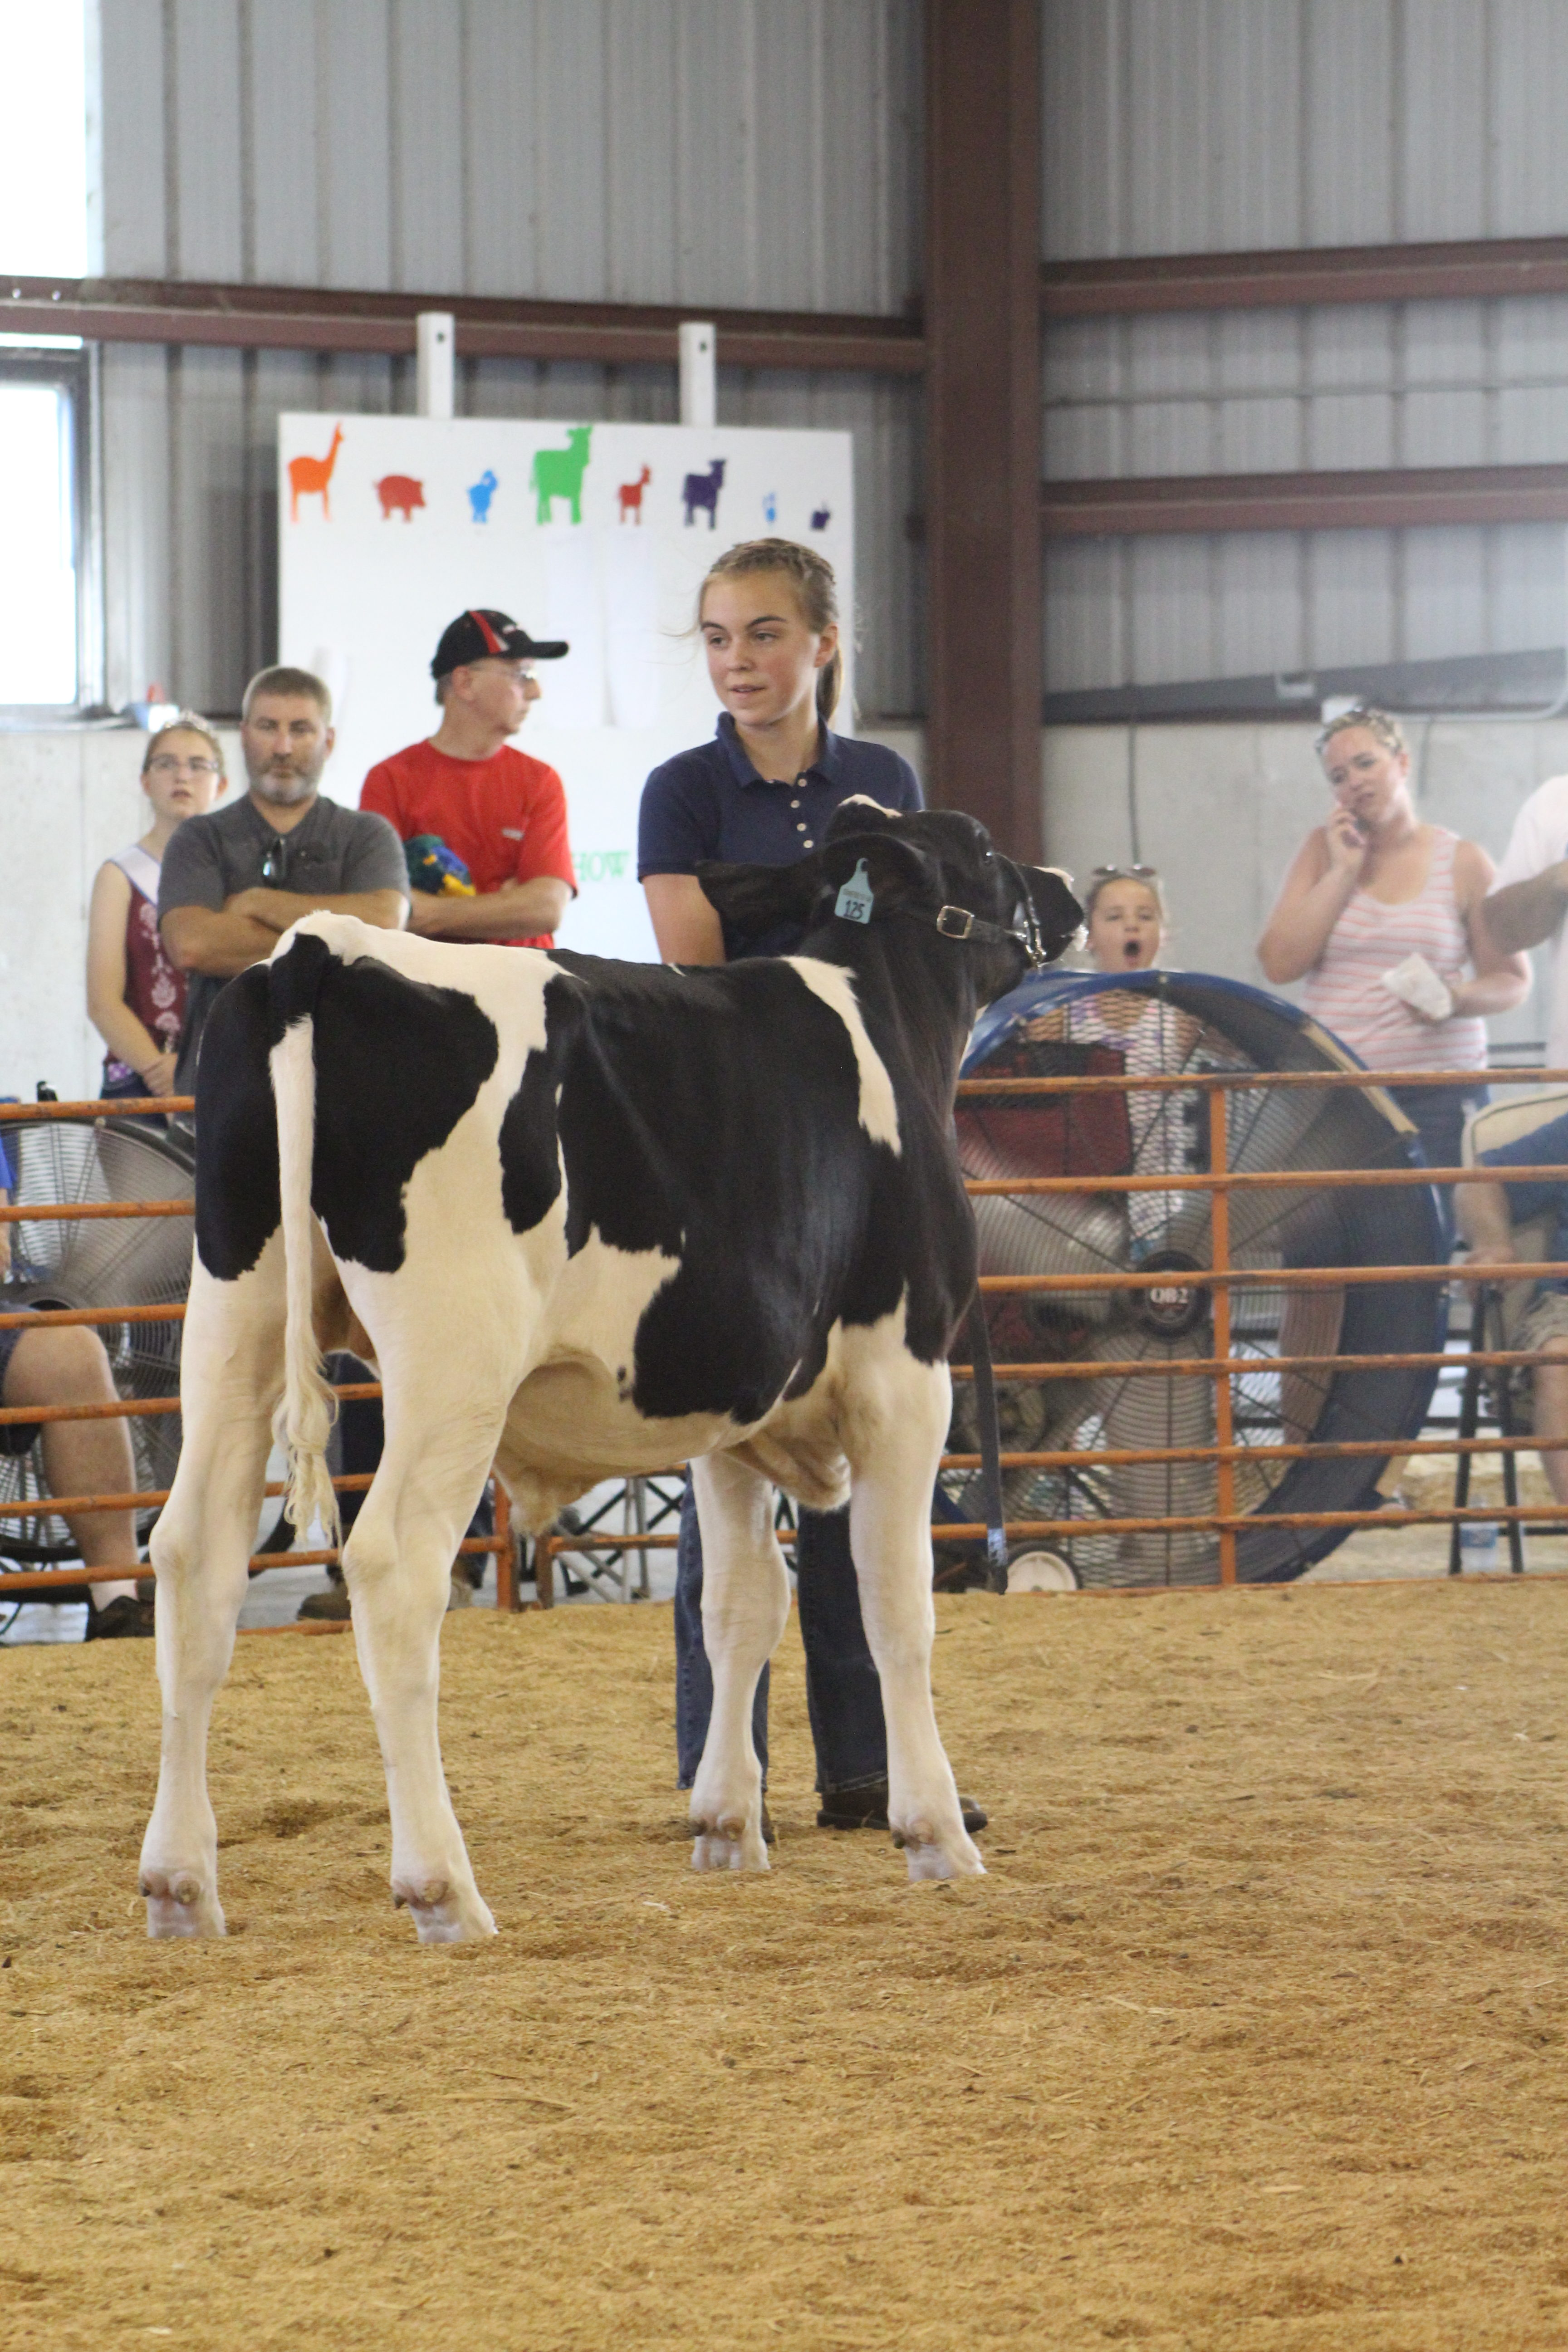 A 'top-notch quality show' put on at the Junior Fair Dairy